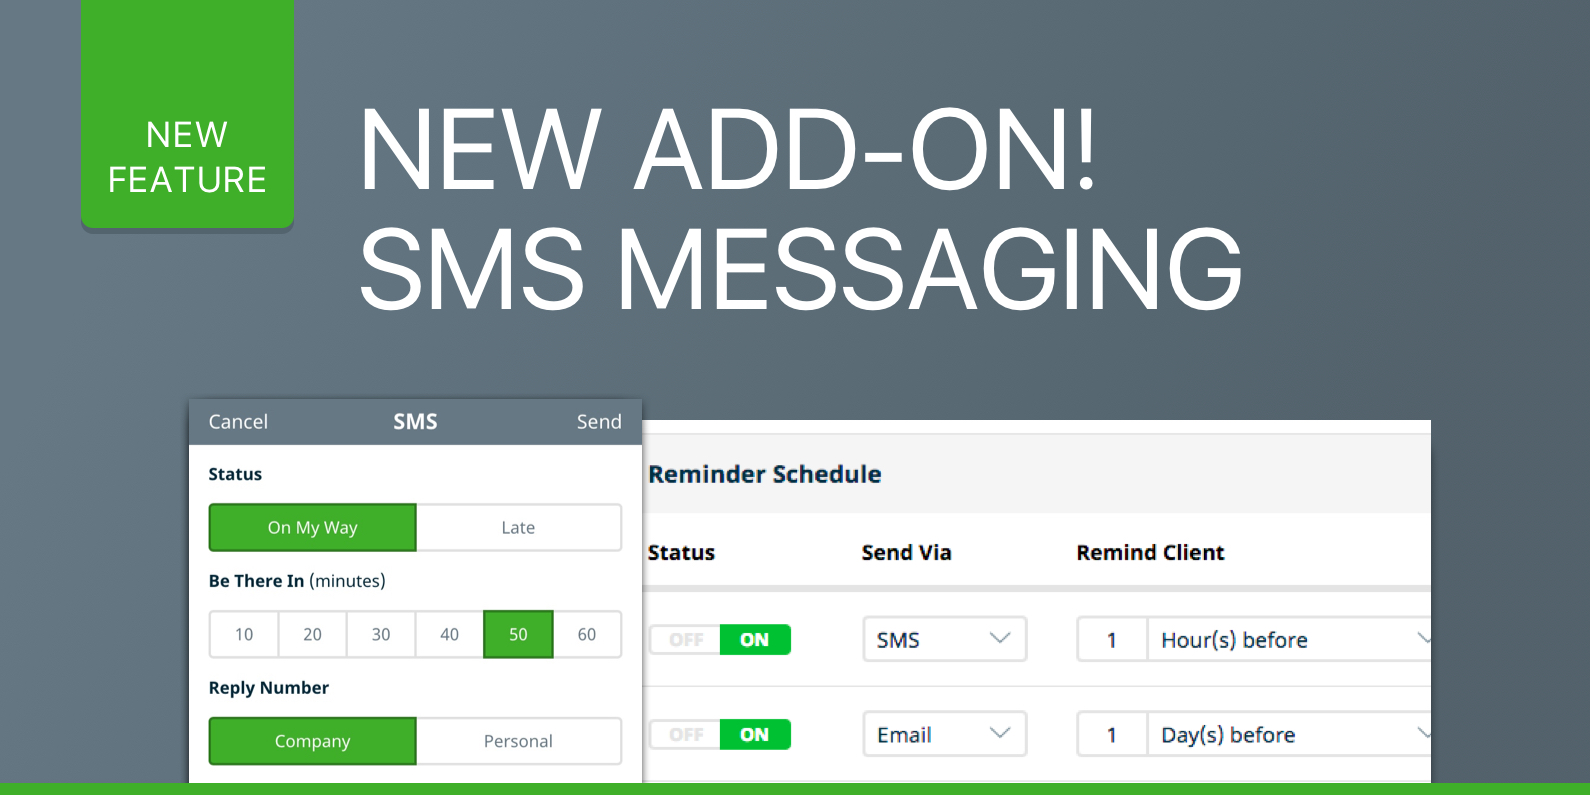 SMS Messaging for Better Client Communication